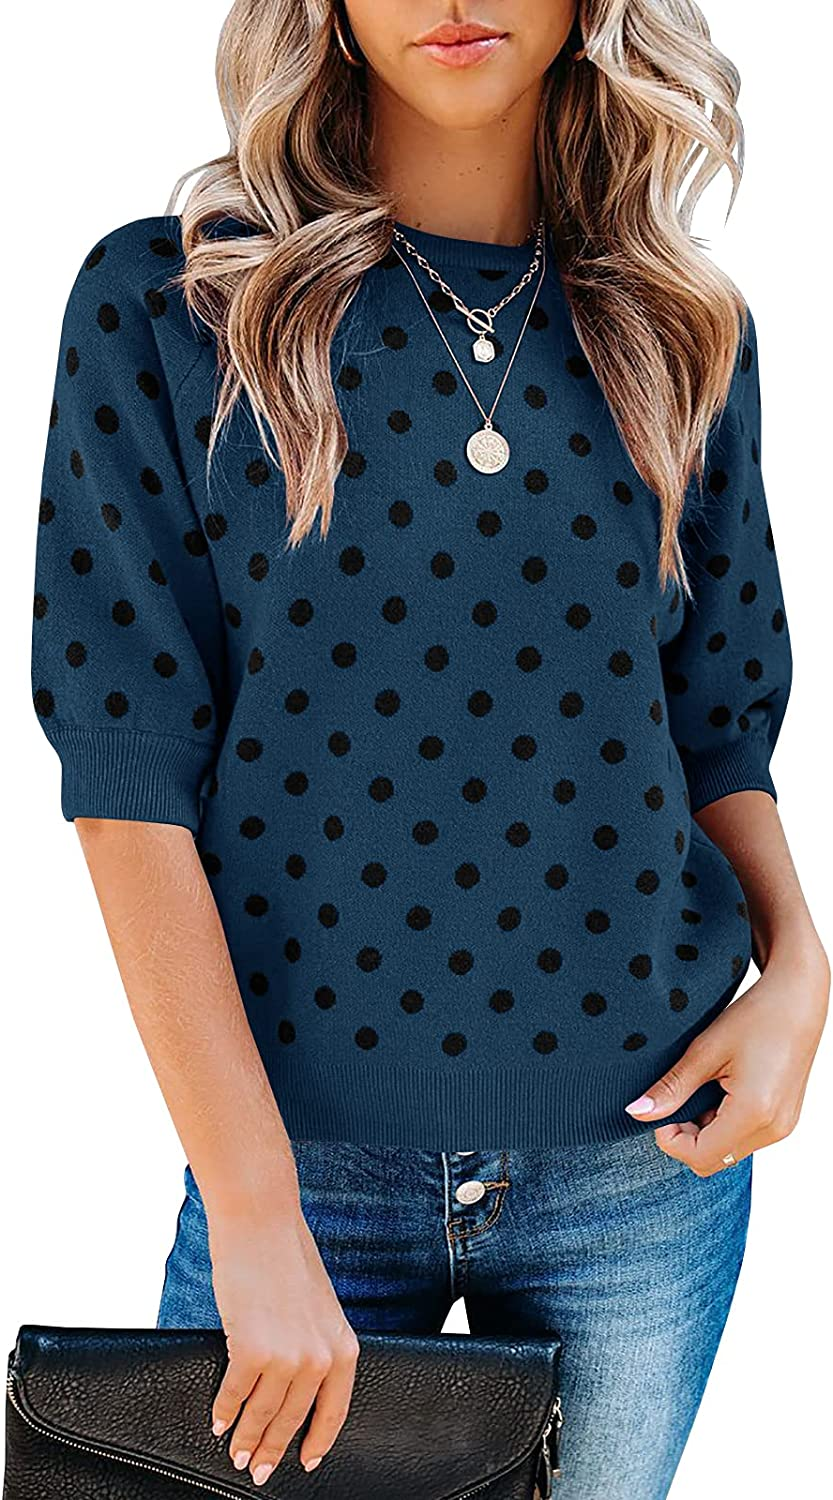 Quality inspection Huiyuzhi Womens Polka Dots Half Sleeve Sweater Pullover Max 48% OFF Lant 3 4